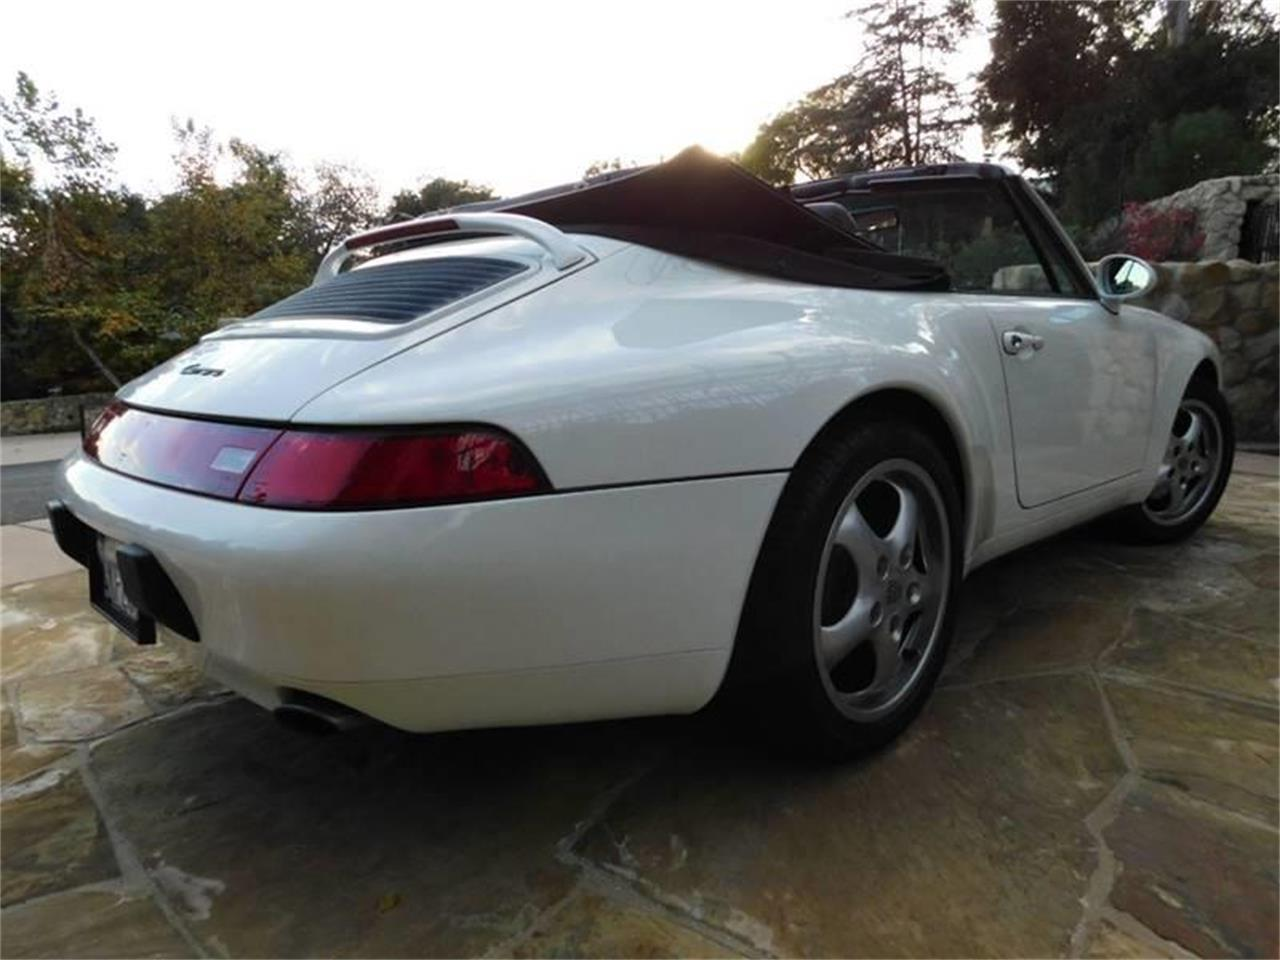 1995 Porsche 911 for sale in Santa Barbara, CA – photo 9